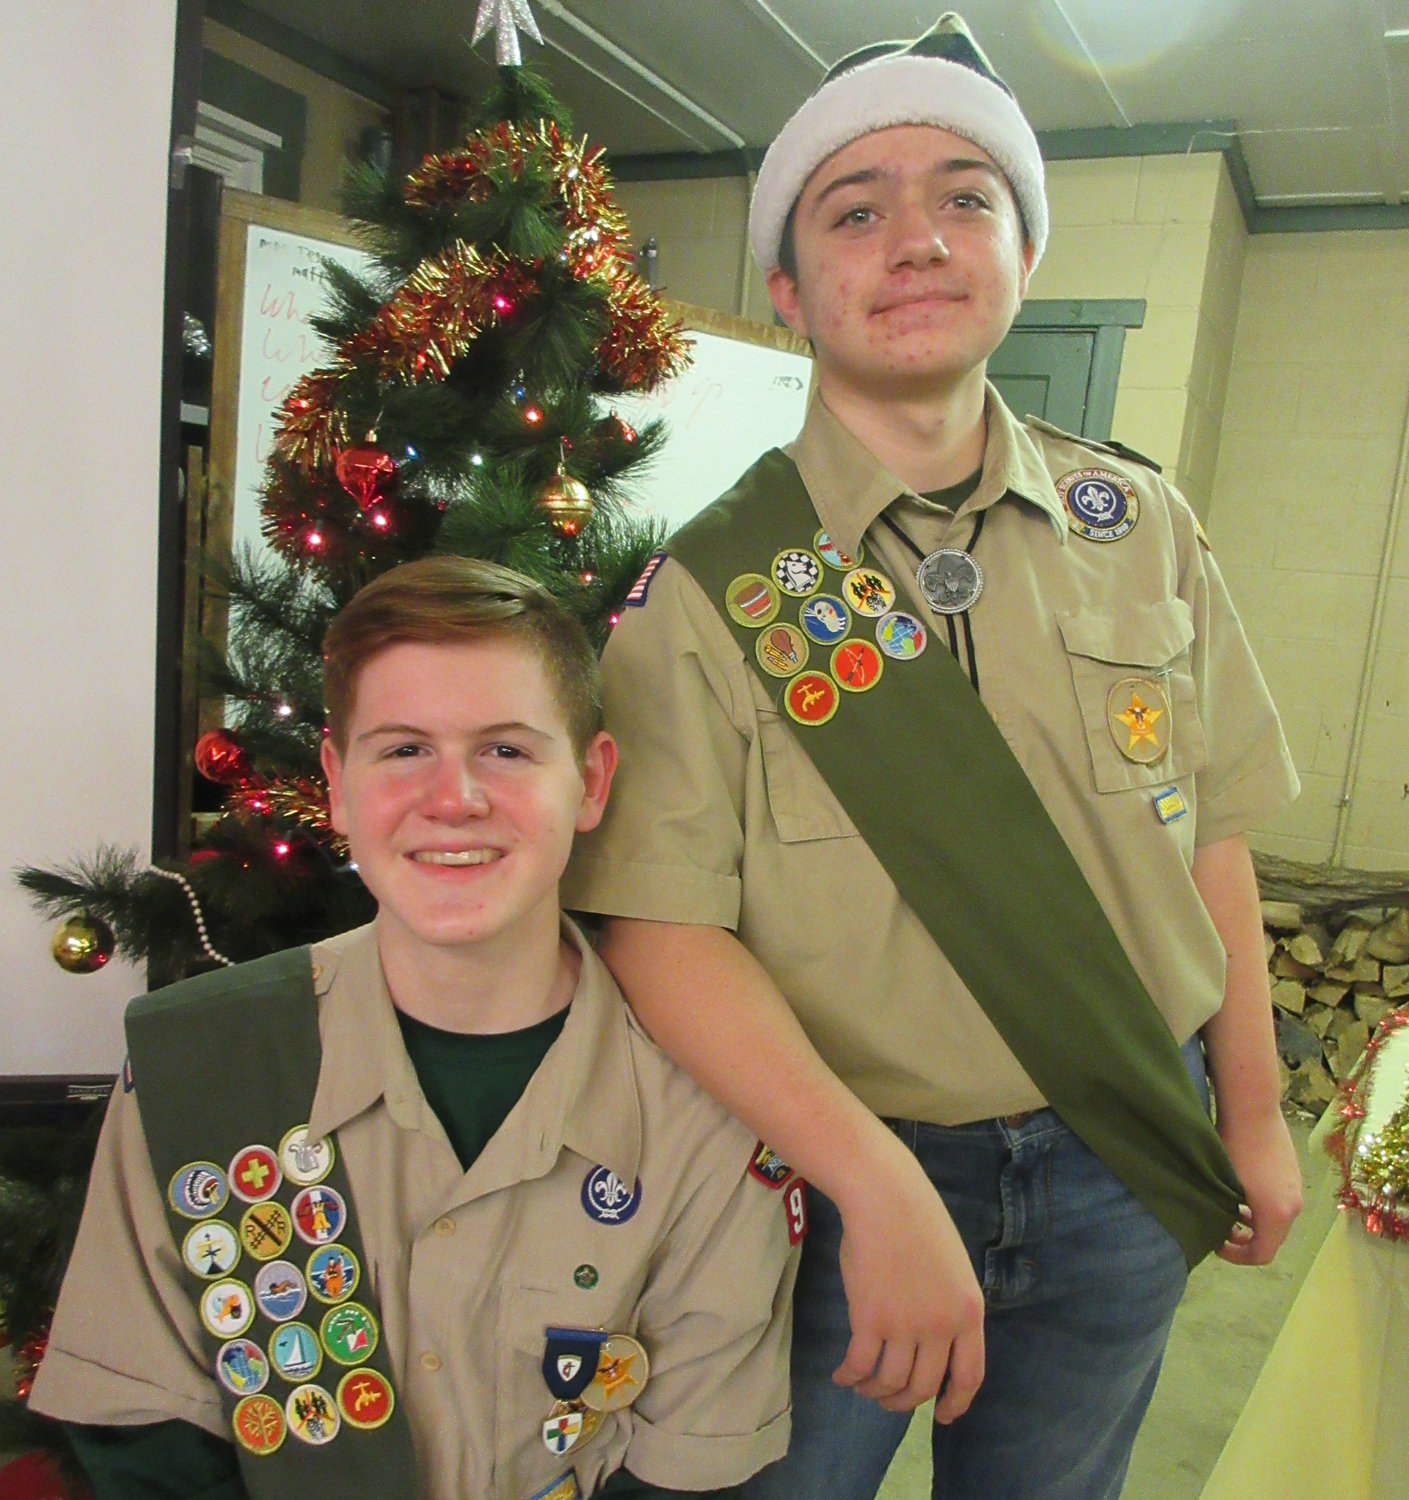 Luke Spangenberg, seated, and Mason Barrick earned the rank of Star Scout. They serve as role models to younger Scouts and as leaders to their troop.